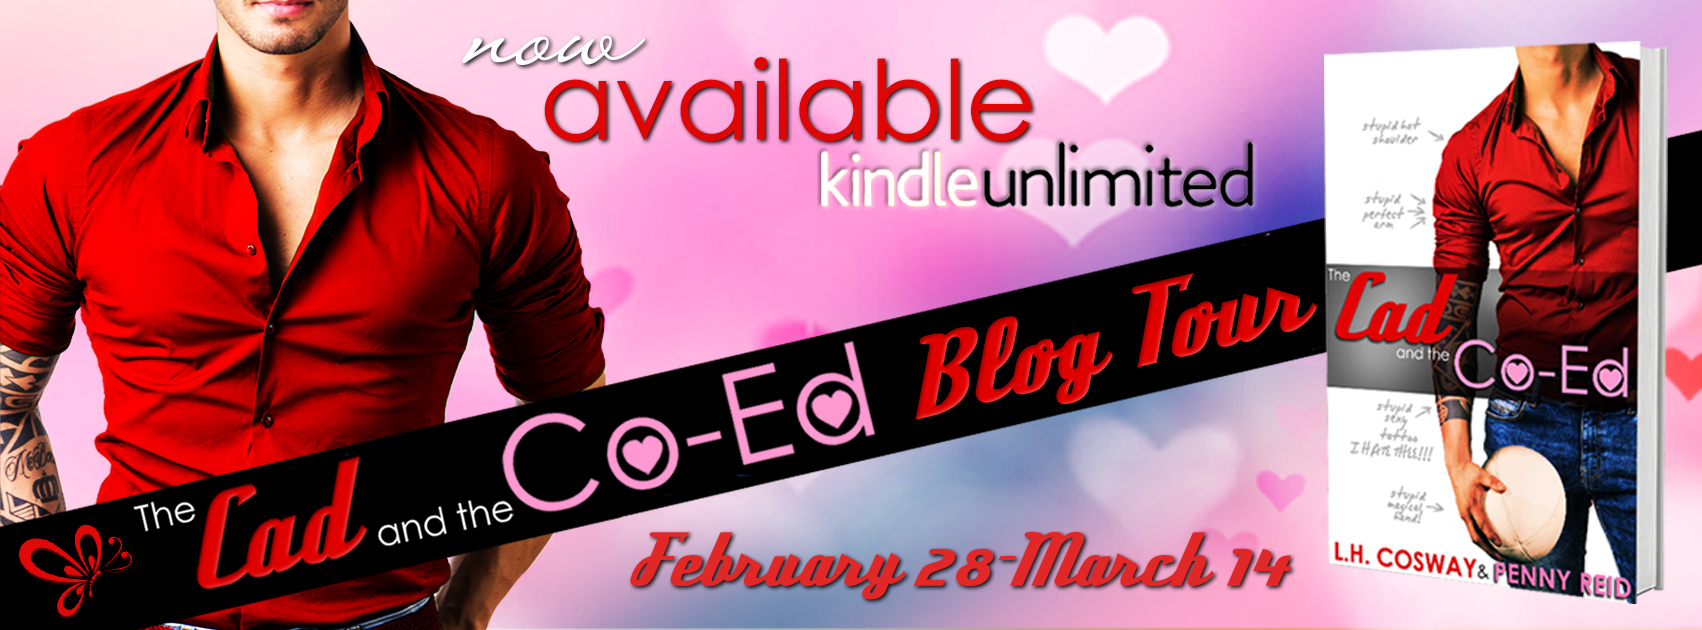 Blog Tour: The Cad and the Co-ed by L.H. Cosway and Penny Reid